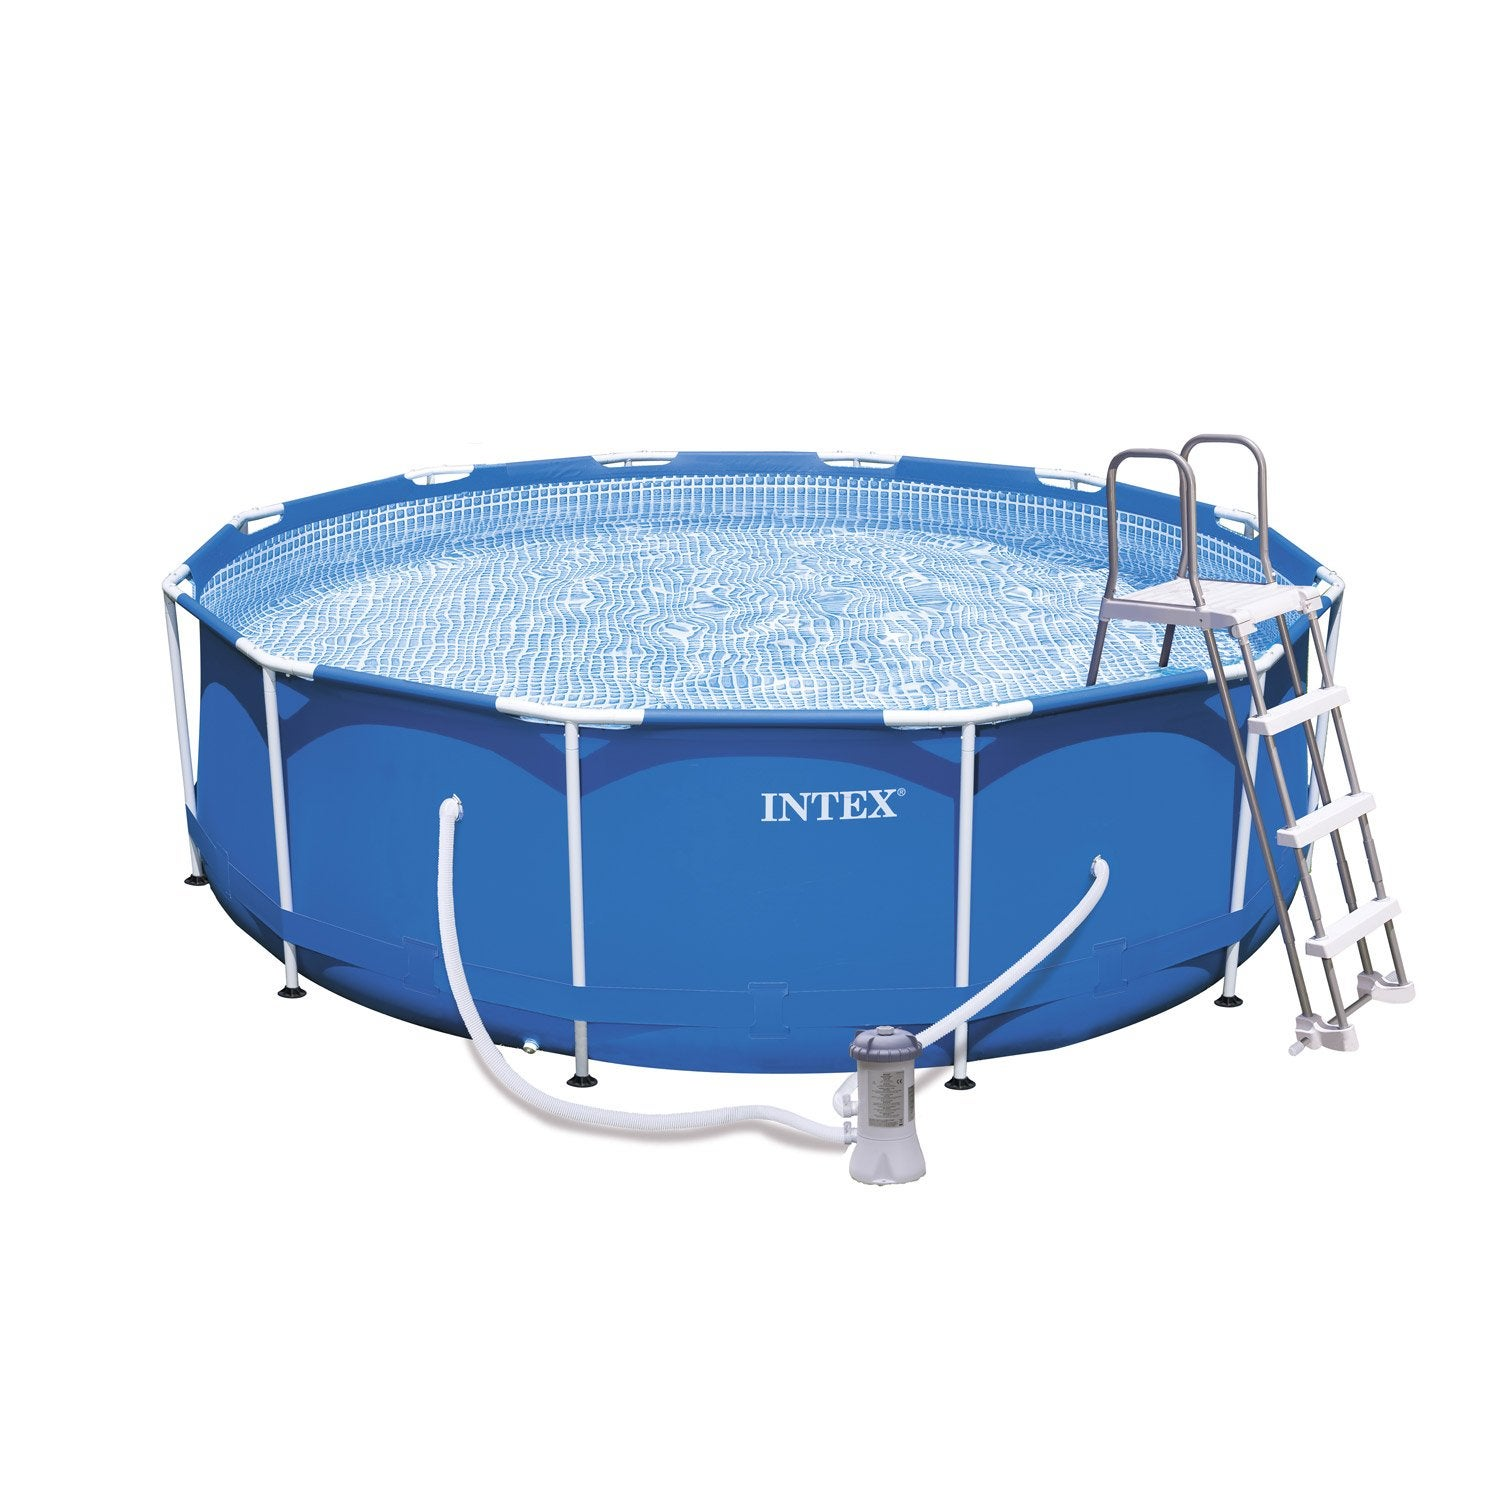 Piscine hors sol autoportante tubulaire m tal frame intex for Piscina autoportante